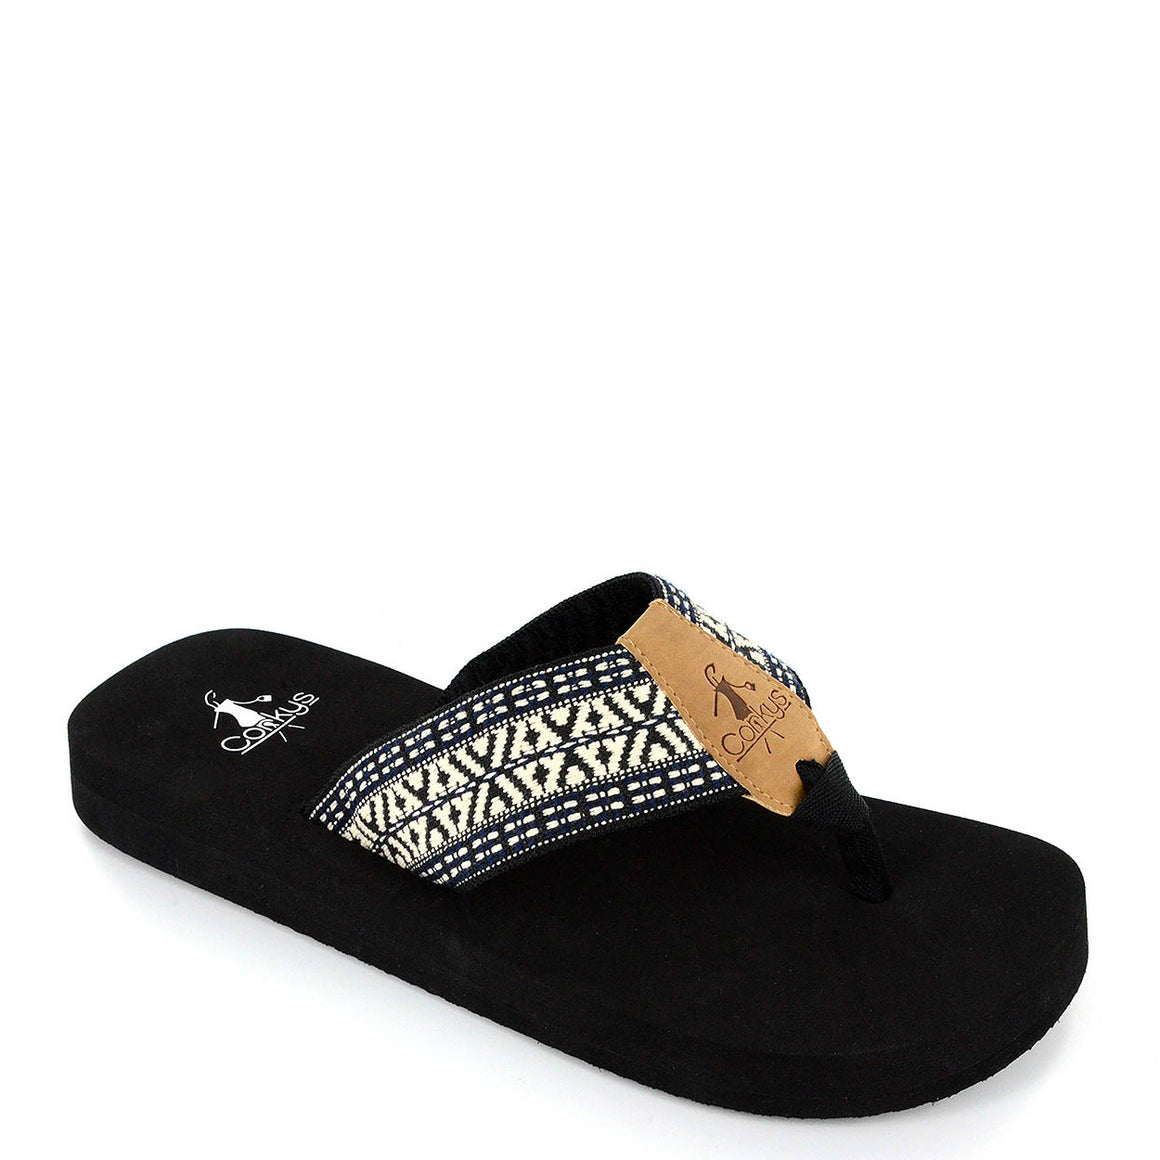 Corkys Women's Cypress Sandal - Black/Cream 20-8084